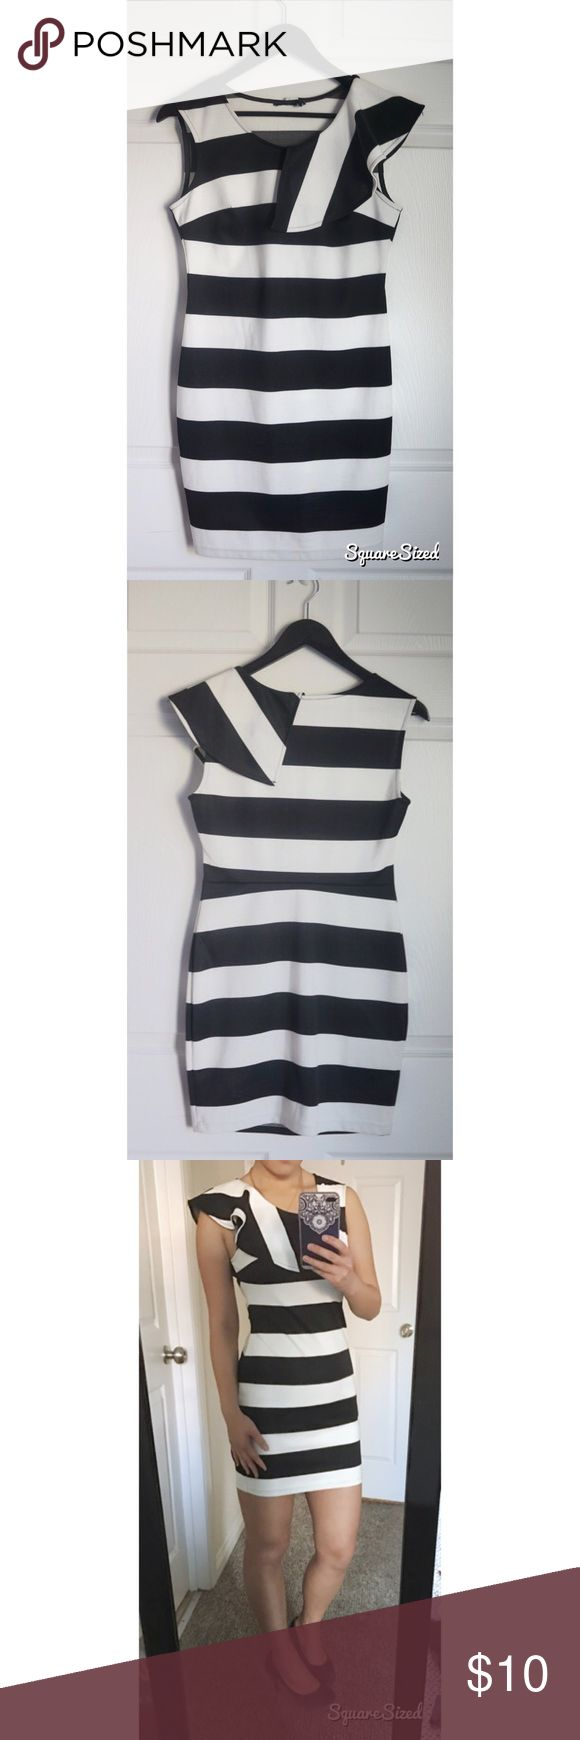 Striped Bodycon Dress Waist: 27-28 inches No stain no damage. In Great condition. 📦Fast shipper: same day or next morning depending on when purchased  📢Bundled discounts. Dresses